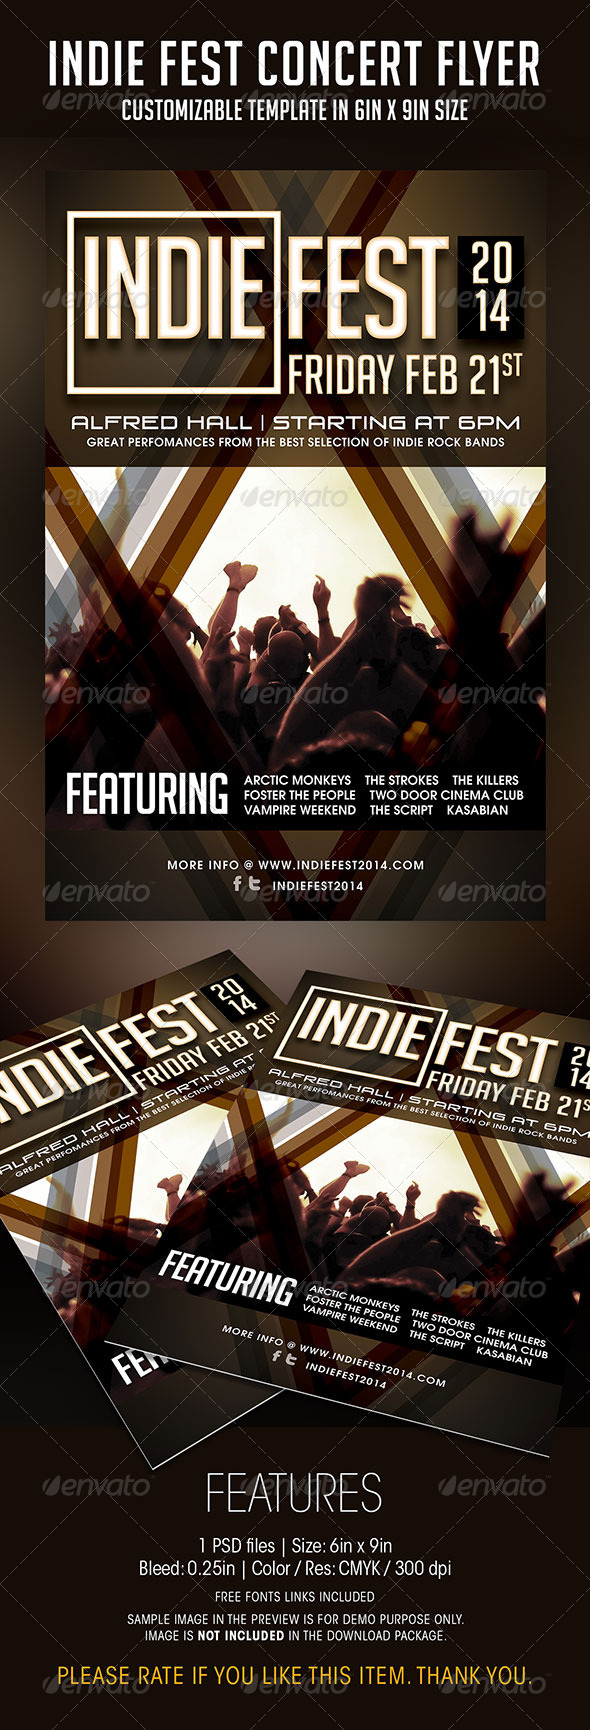 Indie Fest Concert Flyer - Concerts Events